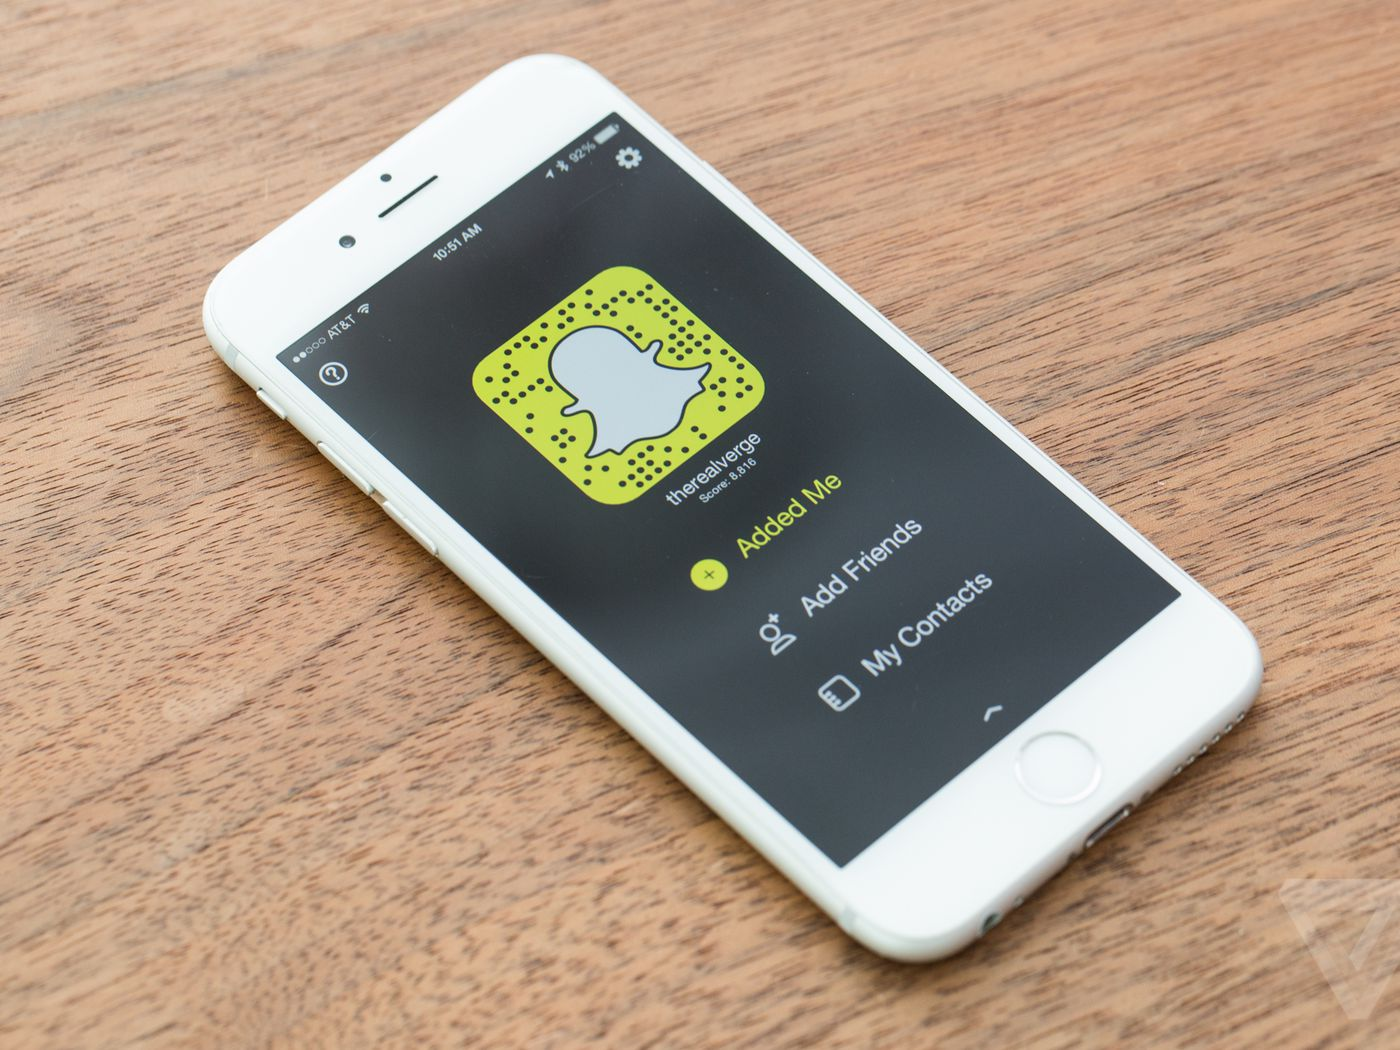 Snapchat's iOS app now lets you add moving emoji inside